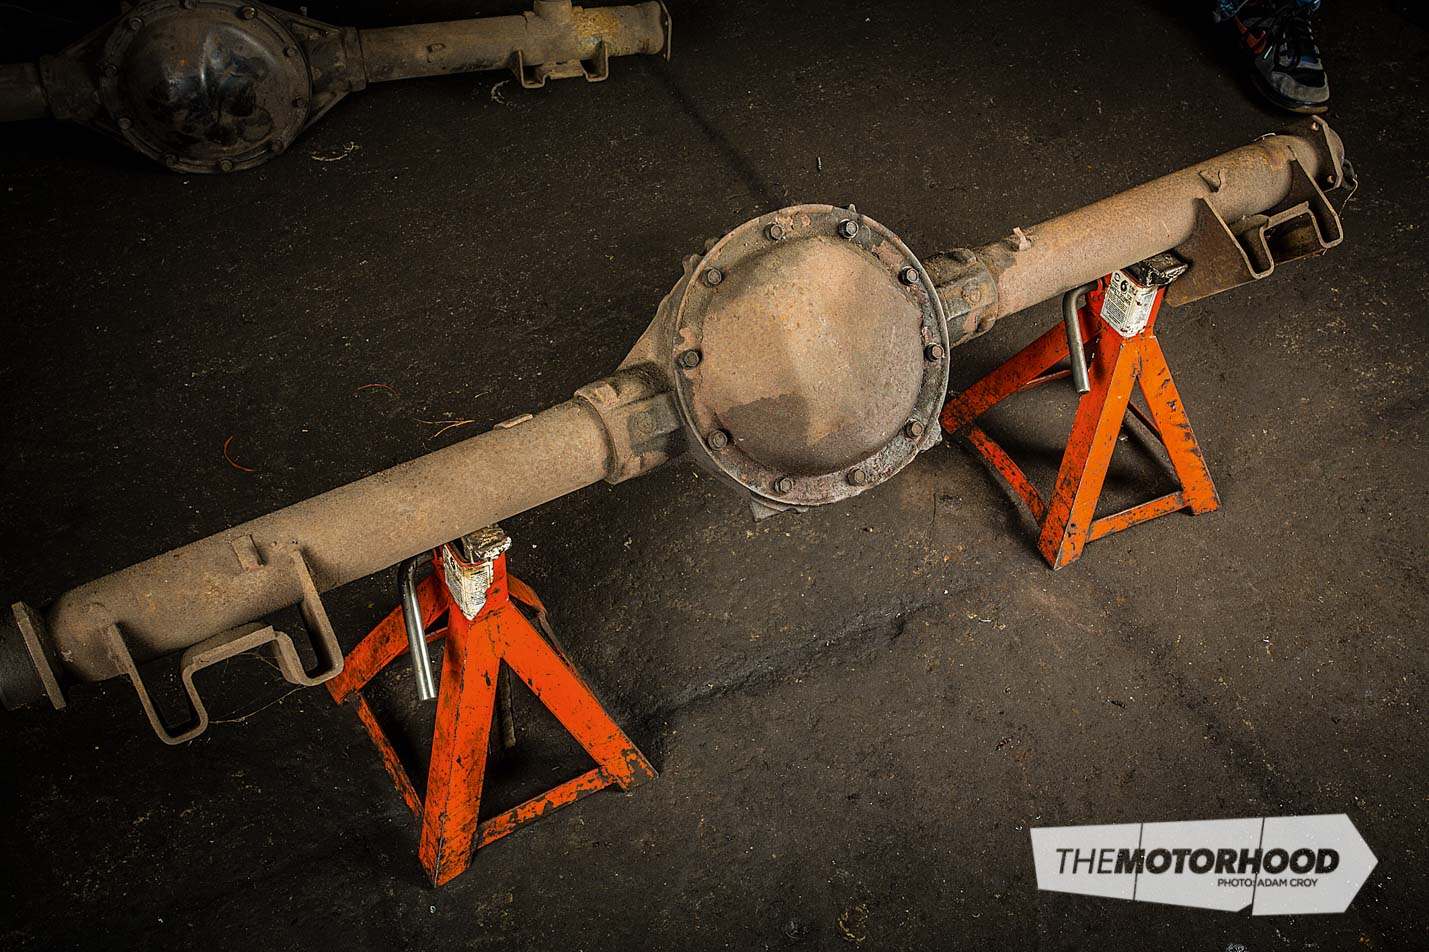 1//2 LOCATOR HOLE 2 PADS FOR 3 REAR END HOUSING AXLE TUBES NEW CURRIE UNIVERSAL WELD-ON LEAF SPRING PADS 1 3//4 WIDE